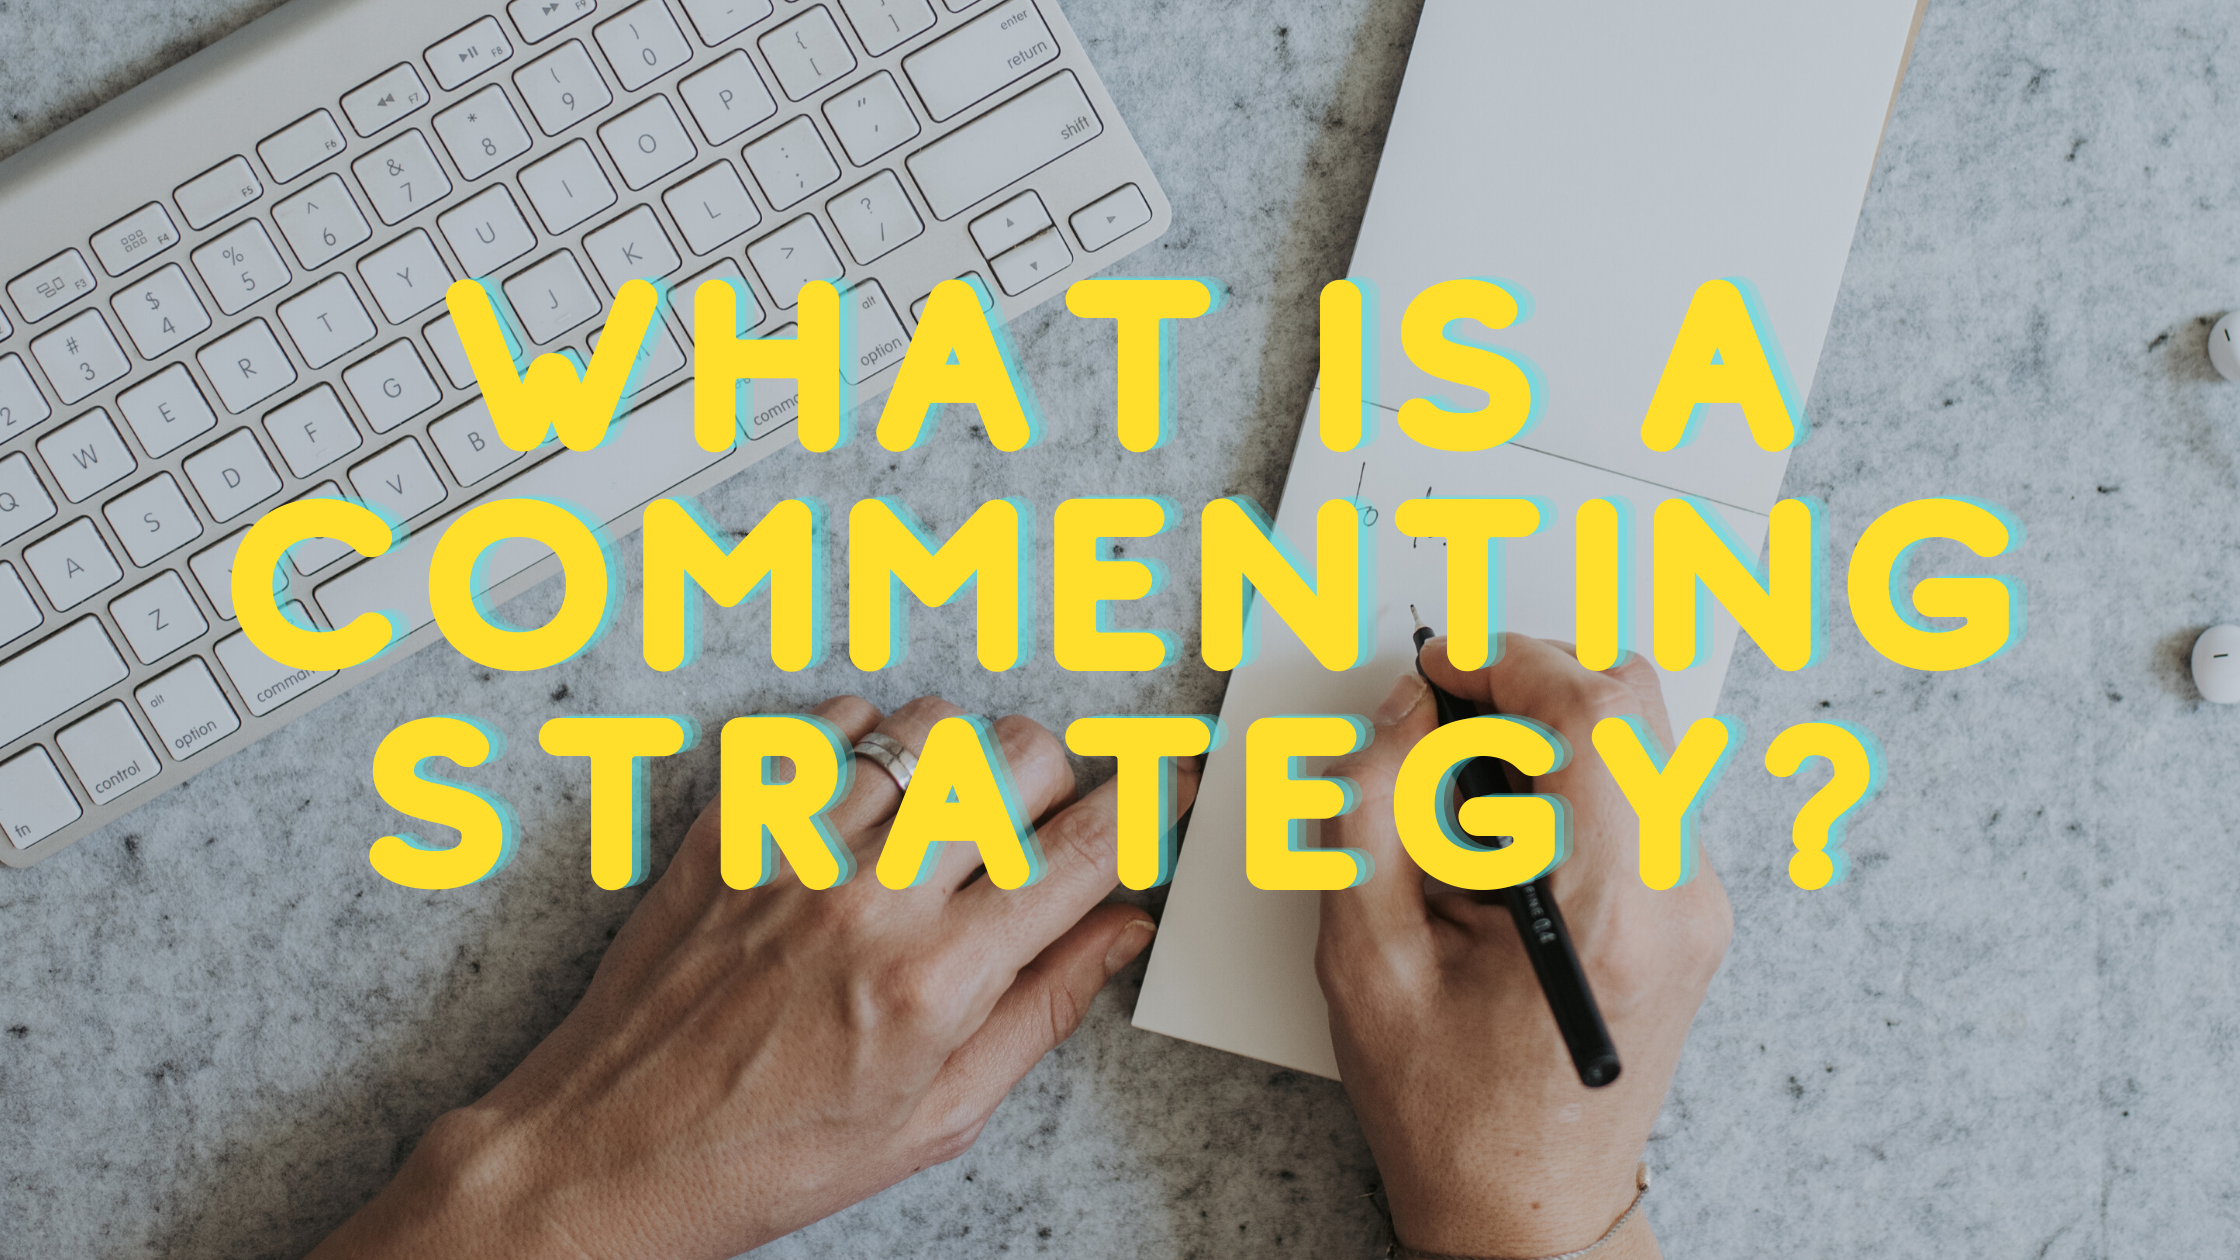 What is a Commenting Strategy?